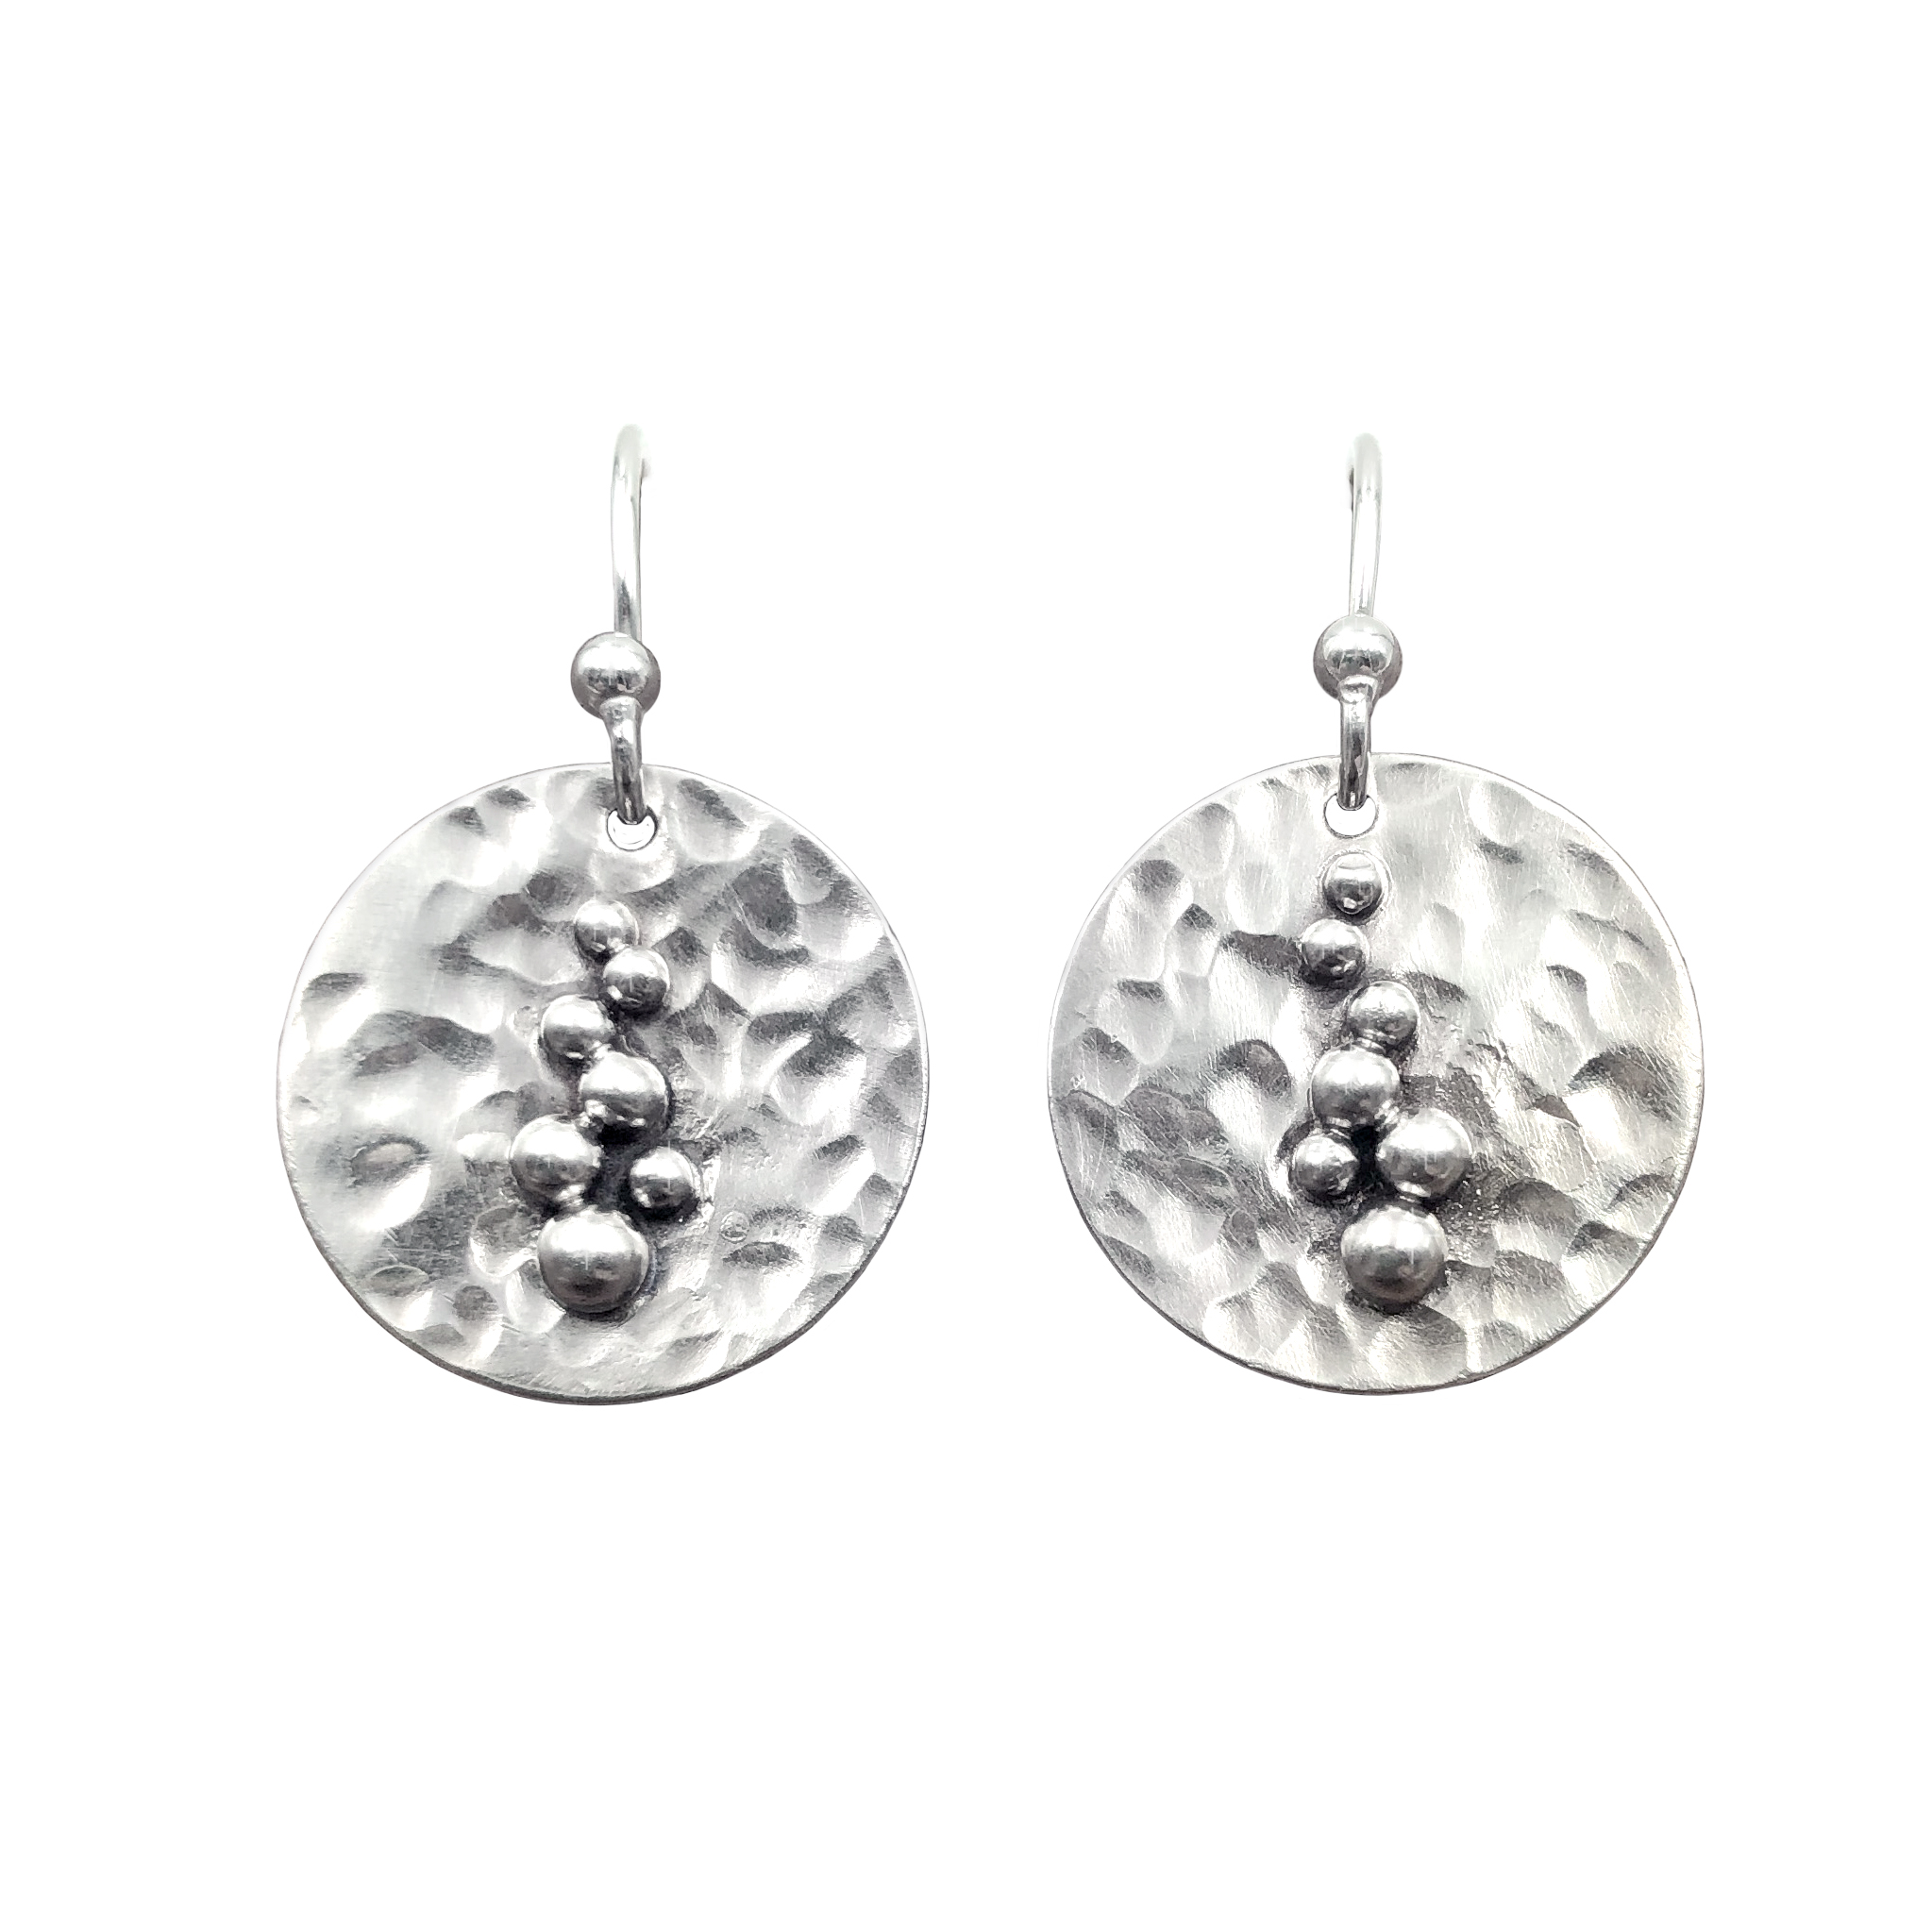 Small Round Hammered Bubble Earrings